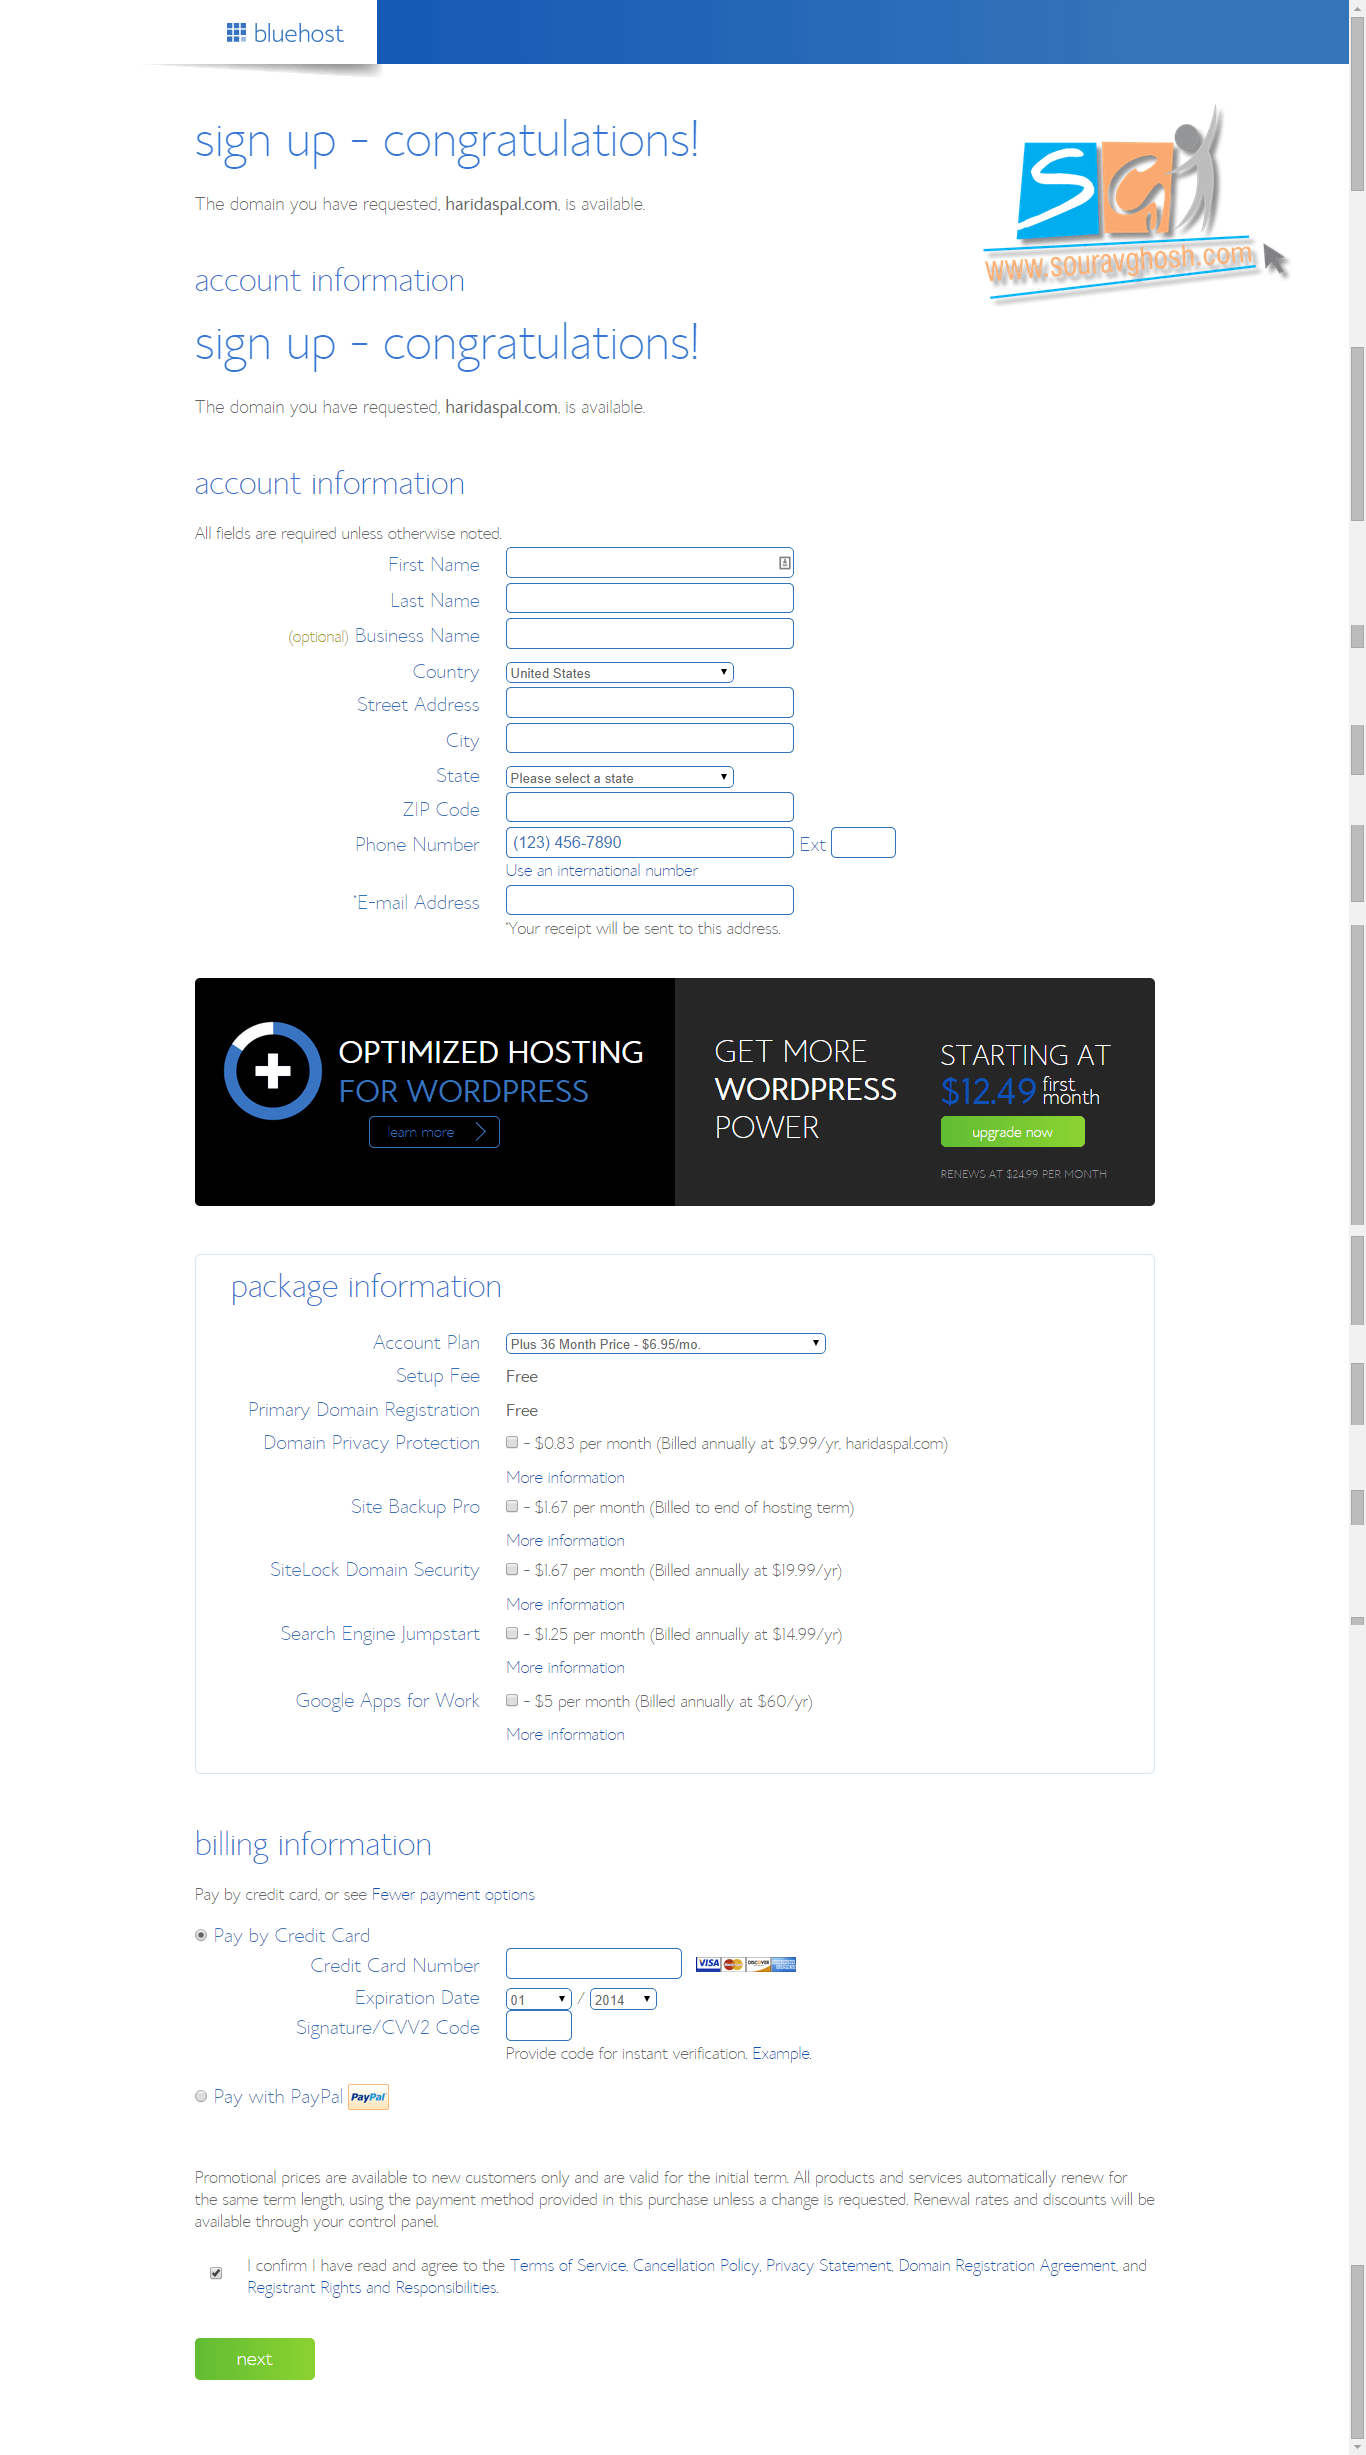 Bluehost fill details page